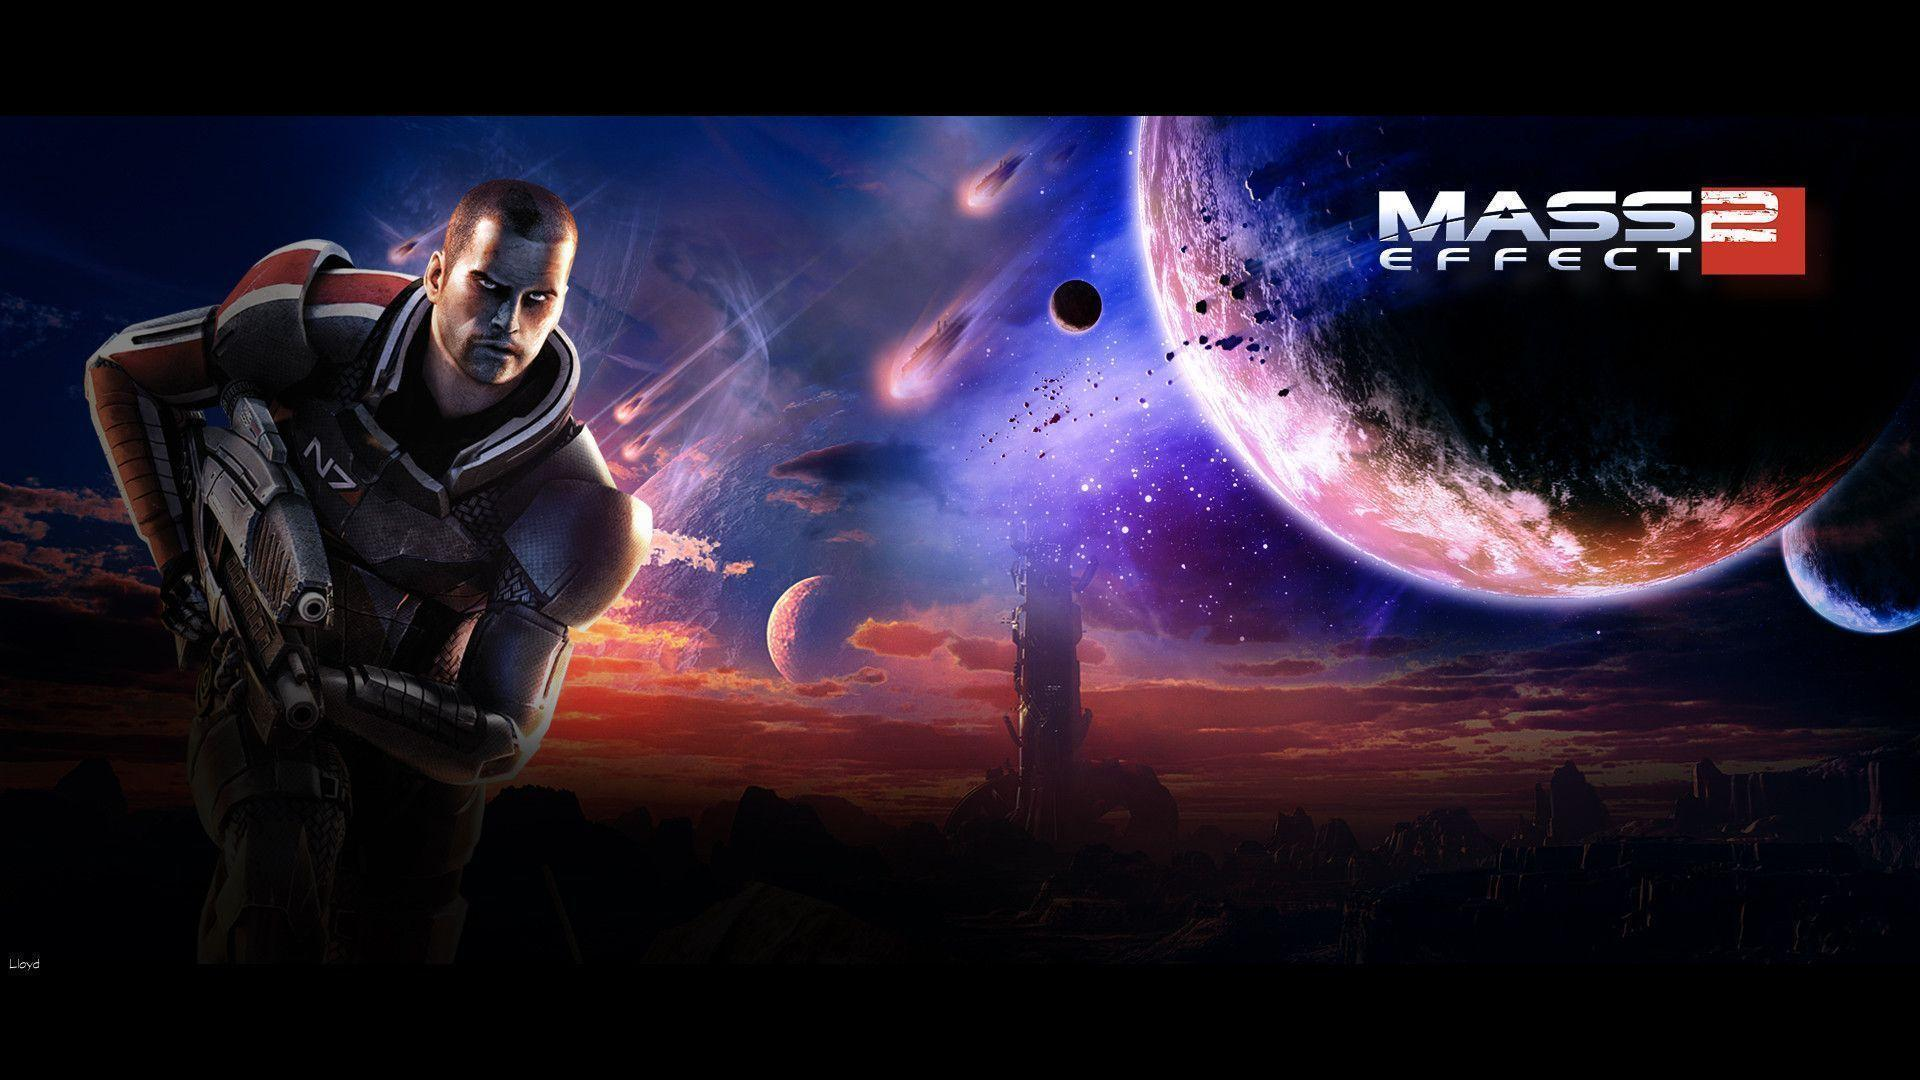 Mass Effect 2 Wallpapers 2 by igotgame1075